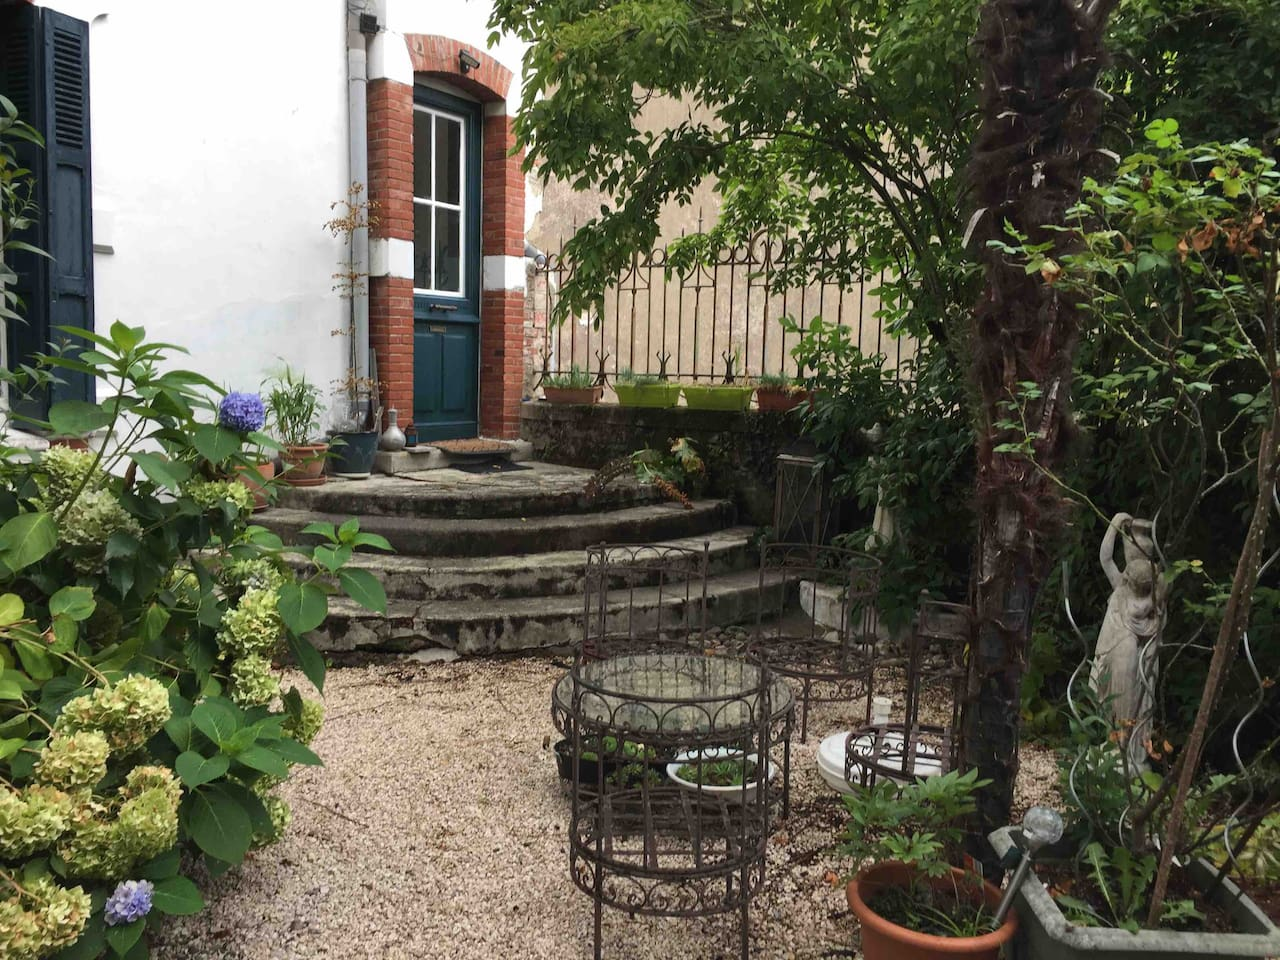 Your private entrance from the front garden with your own quiet seating area.